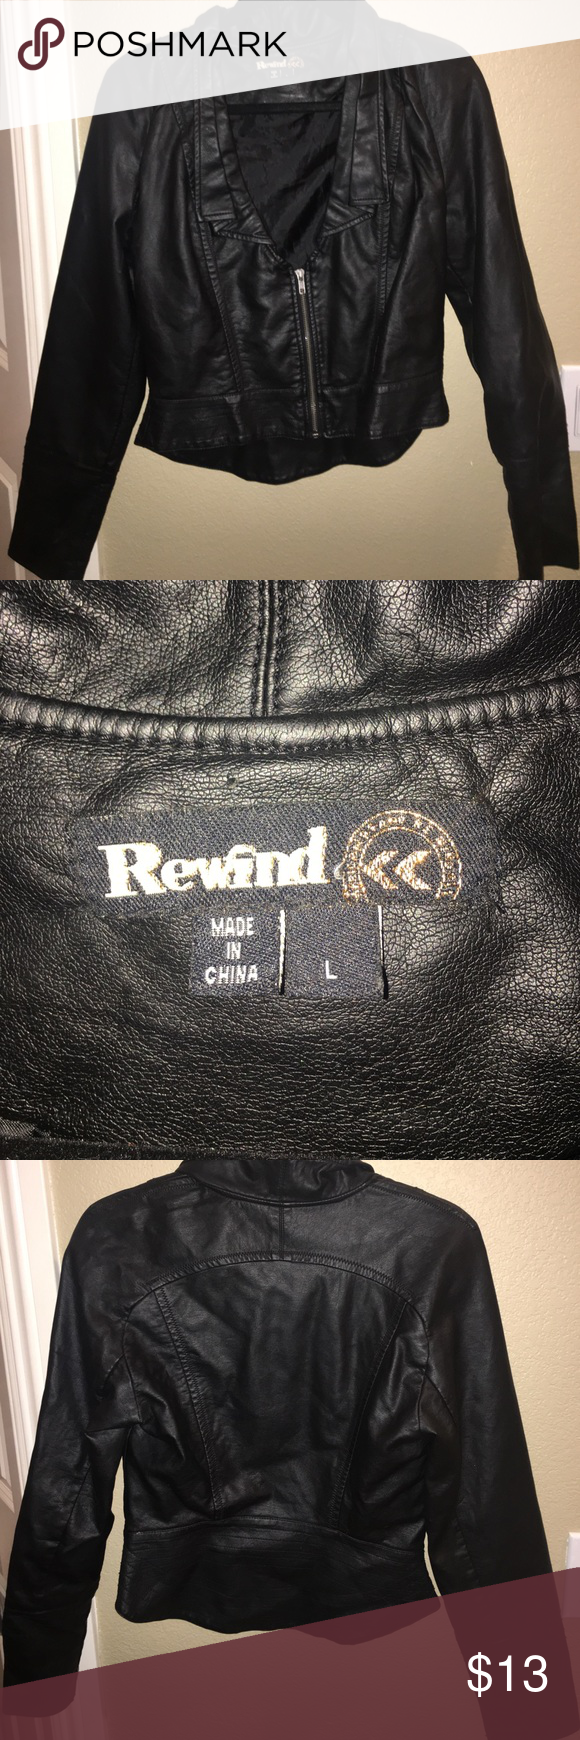 Leather jacket damage - Faux Leather Jacket Black Faux Leather Jacket Cute And Fashionable Excellent Condition No